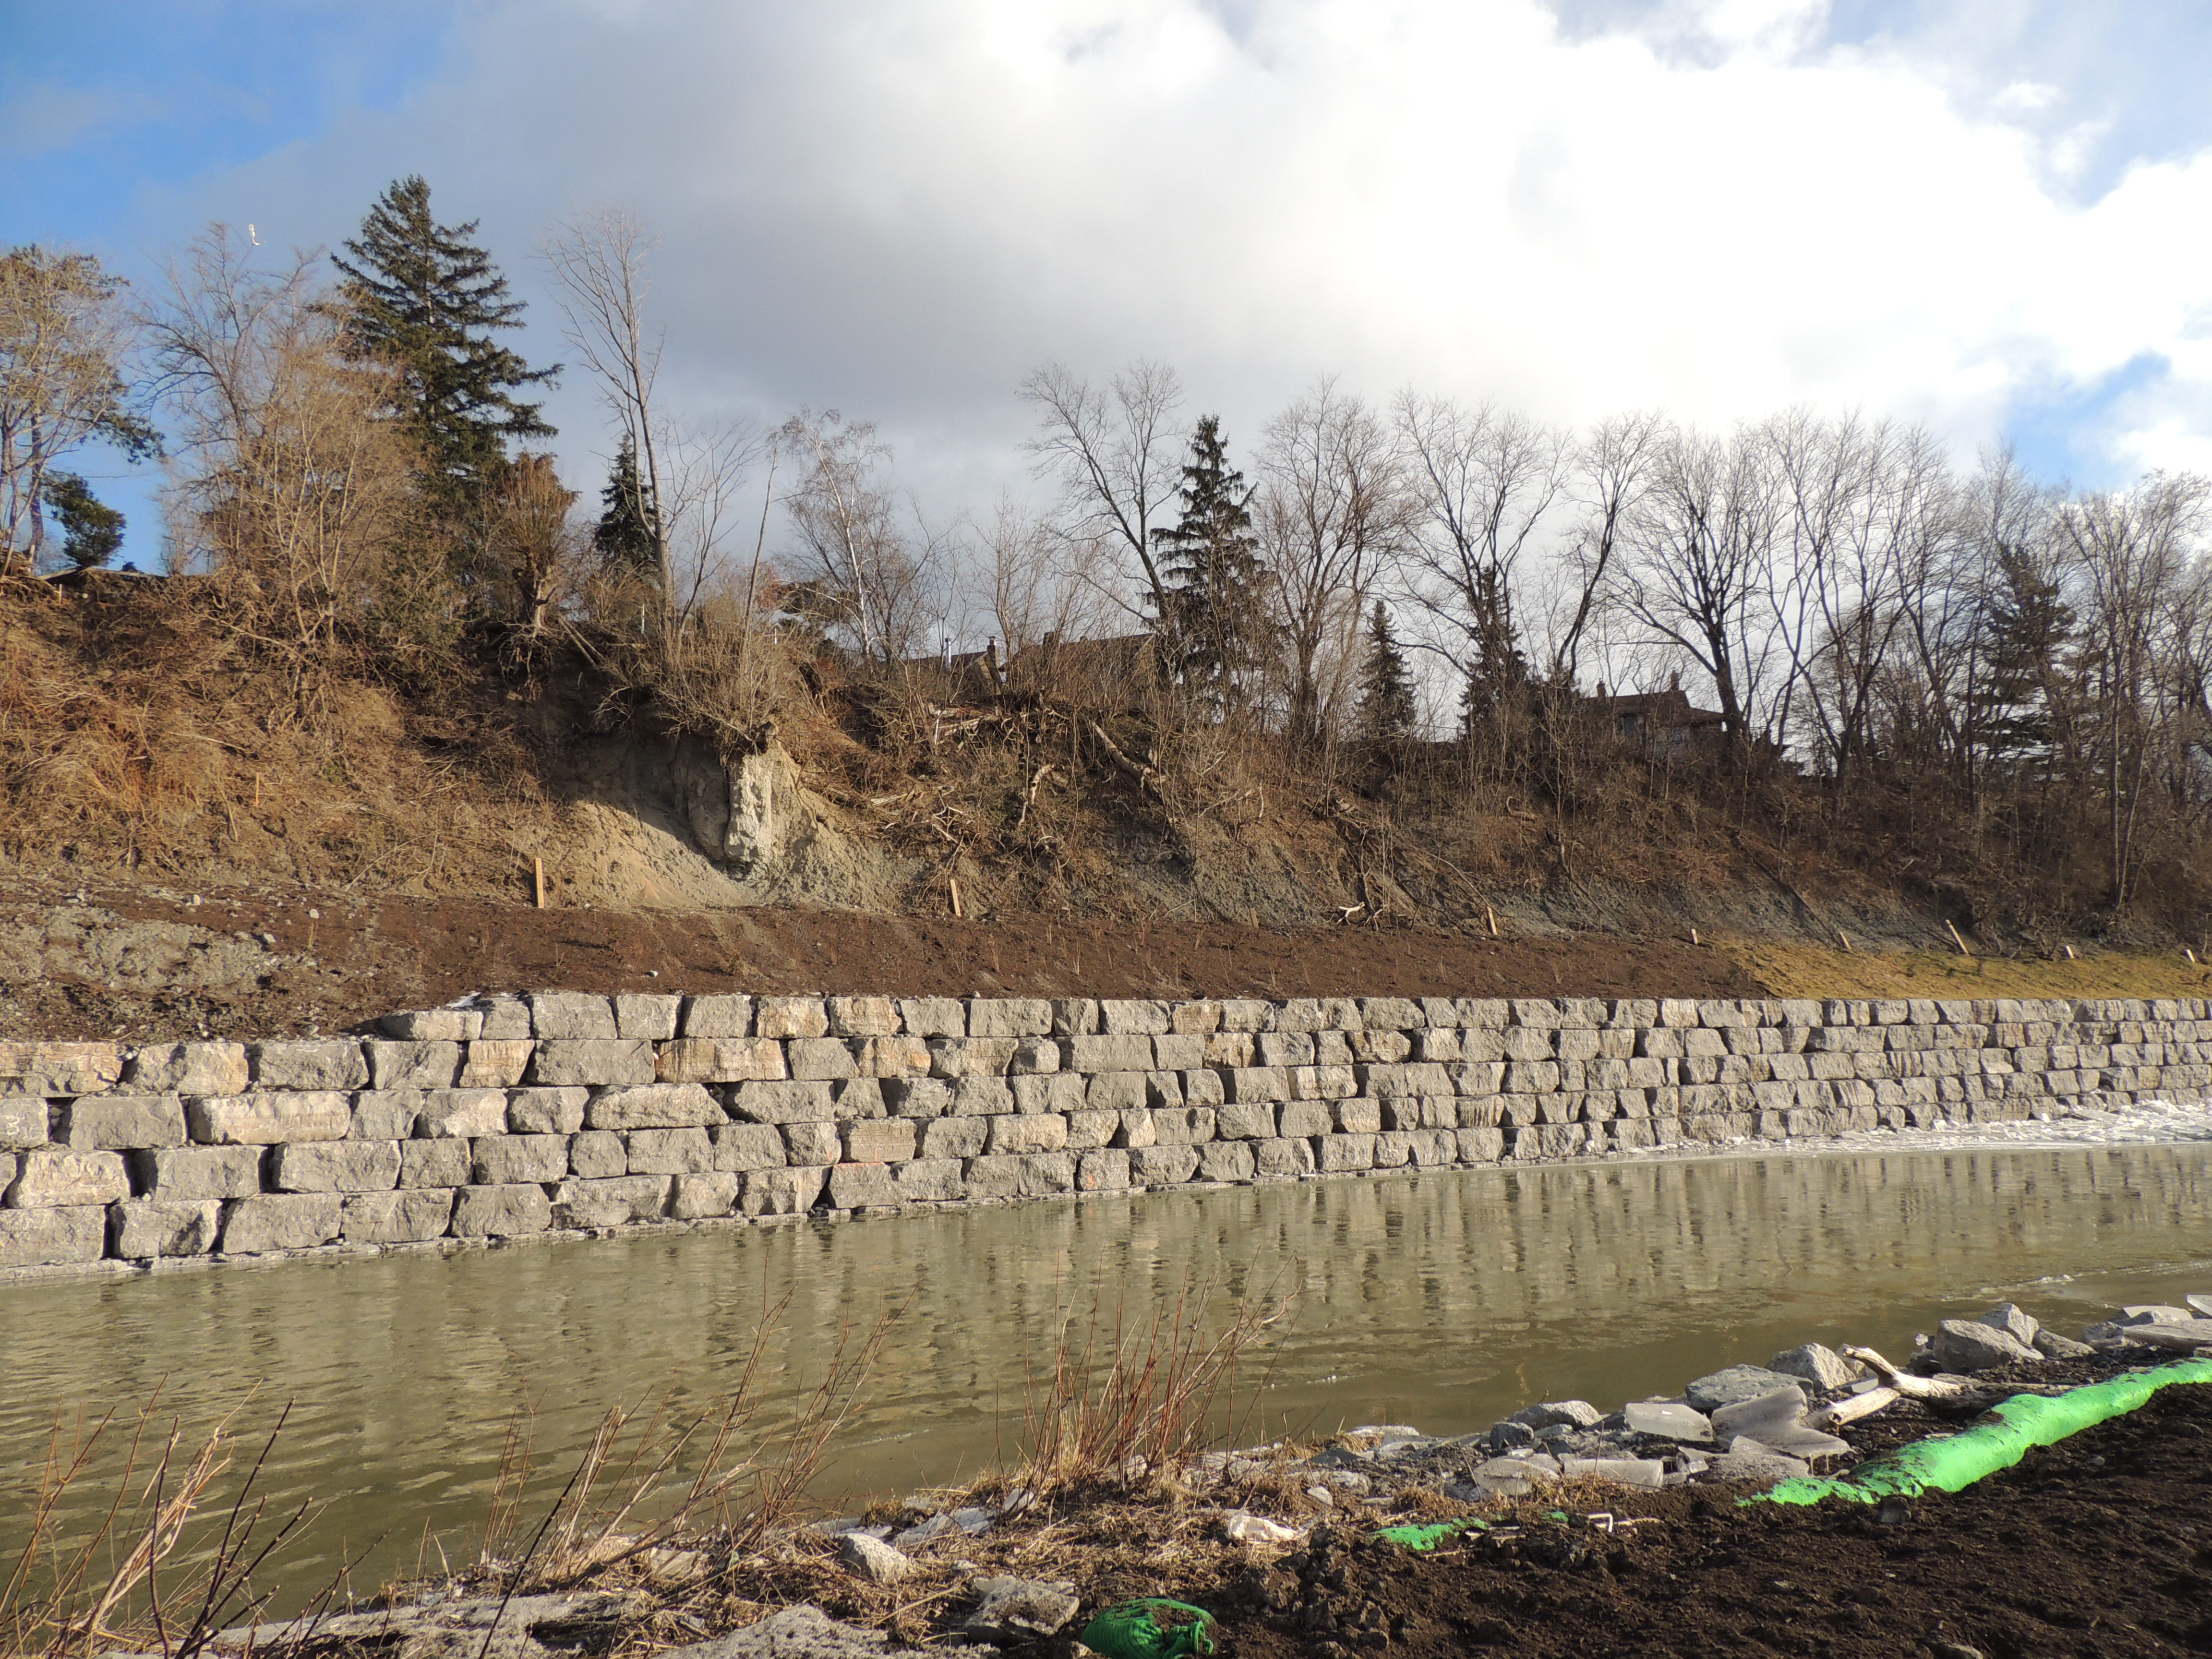 An armourstone wall and soil stabilization measures at the toe of a steep slope overlooking the Humber River